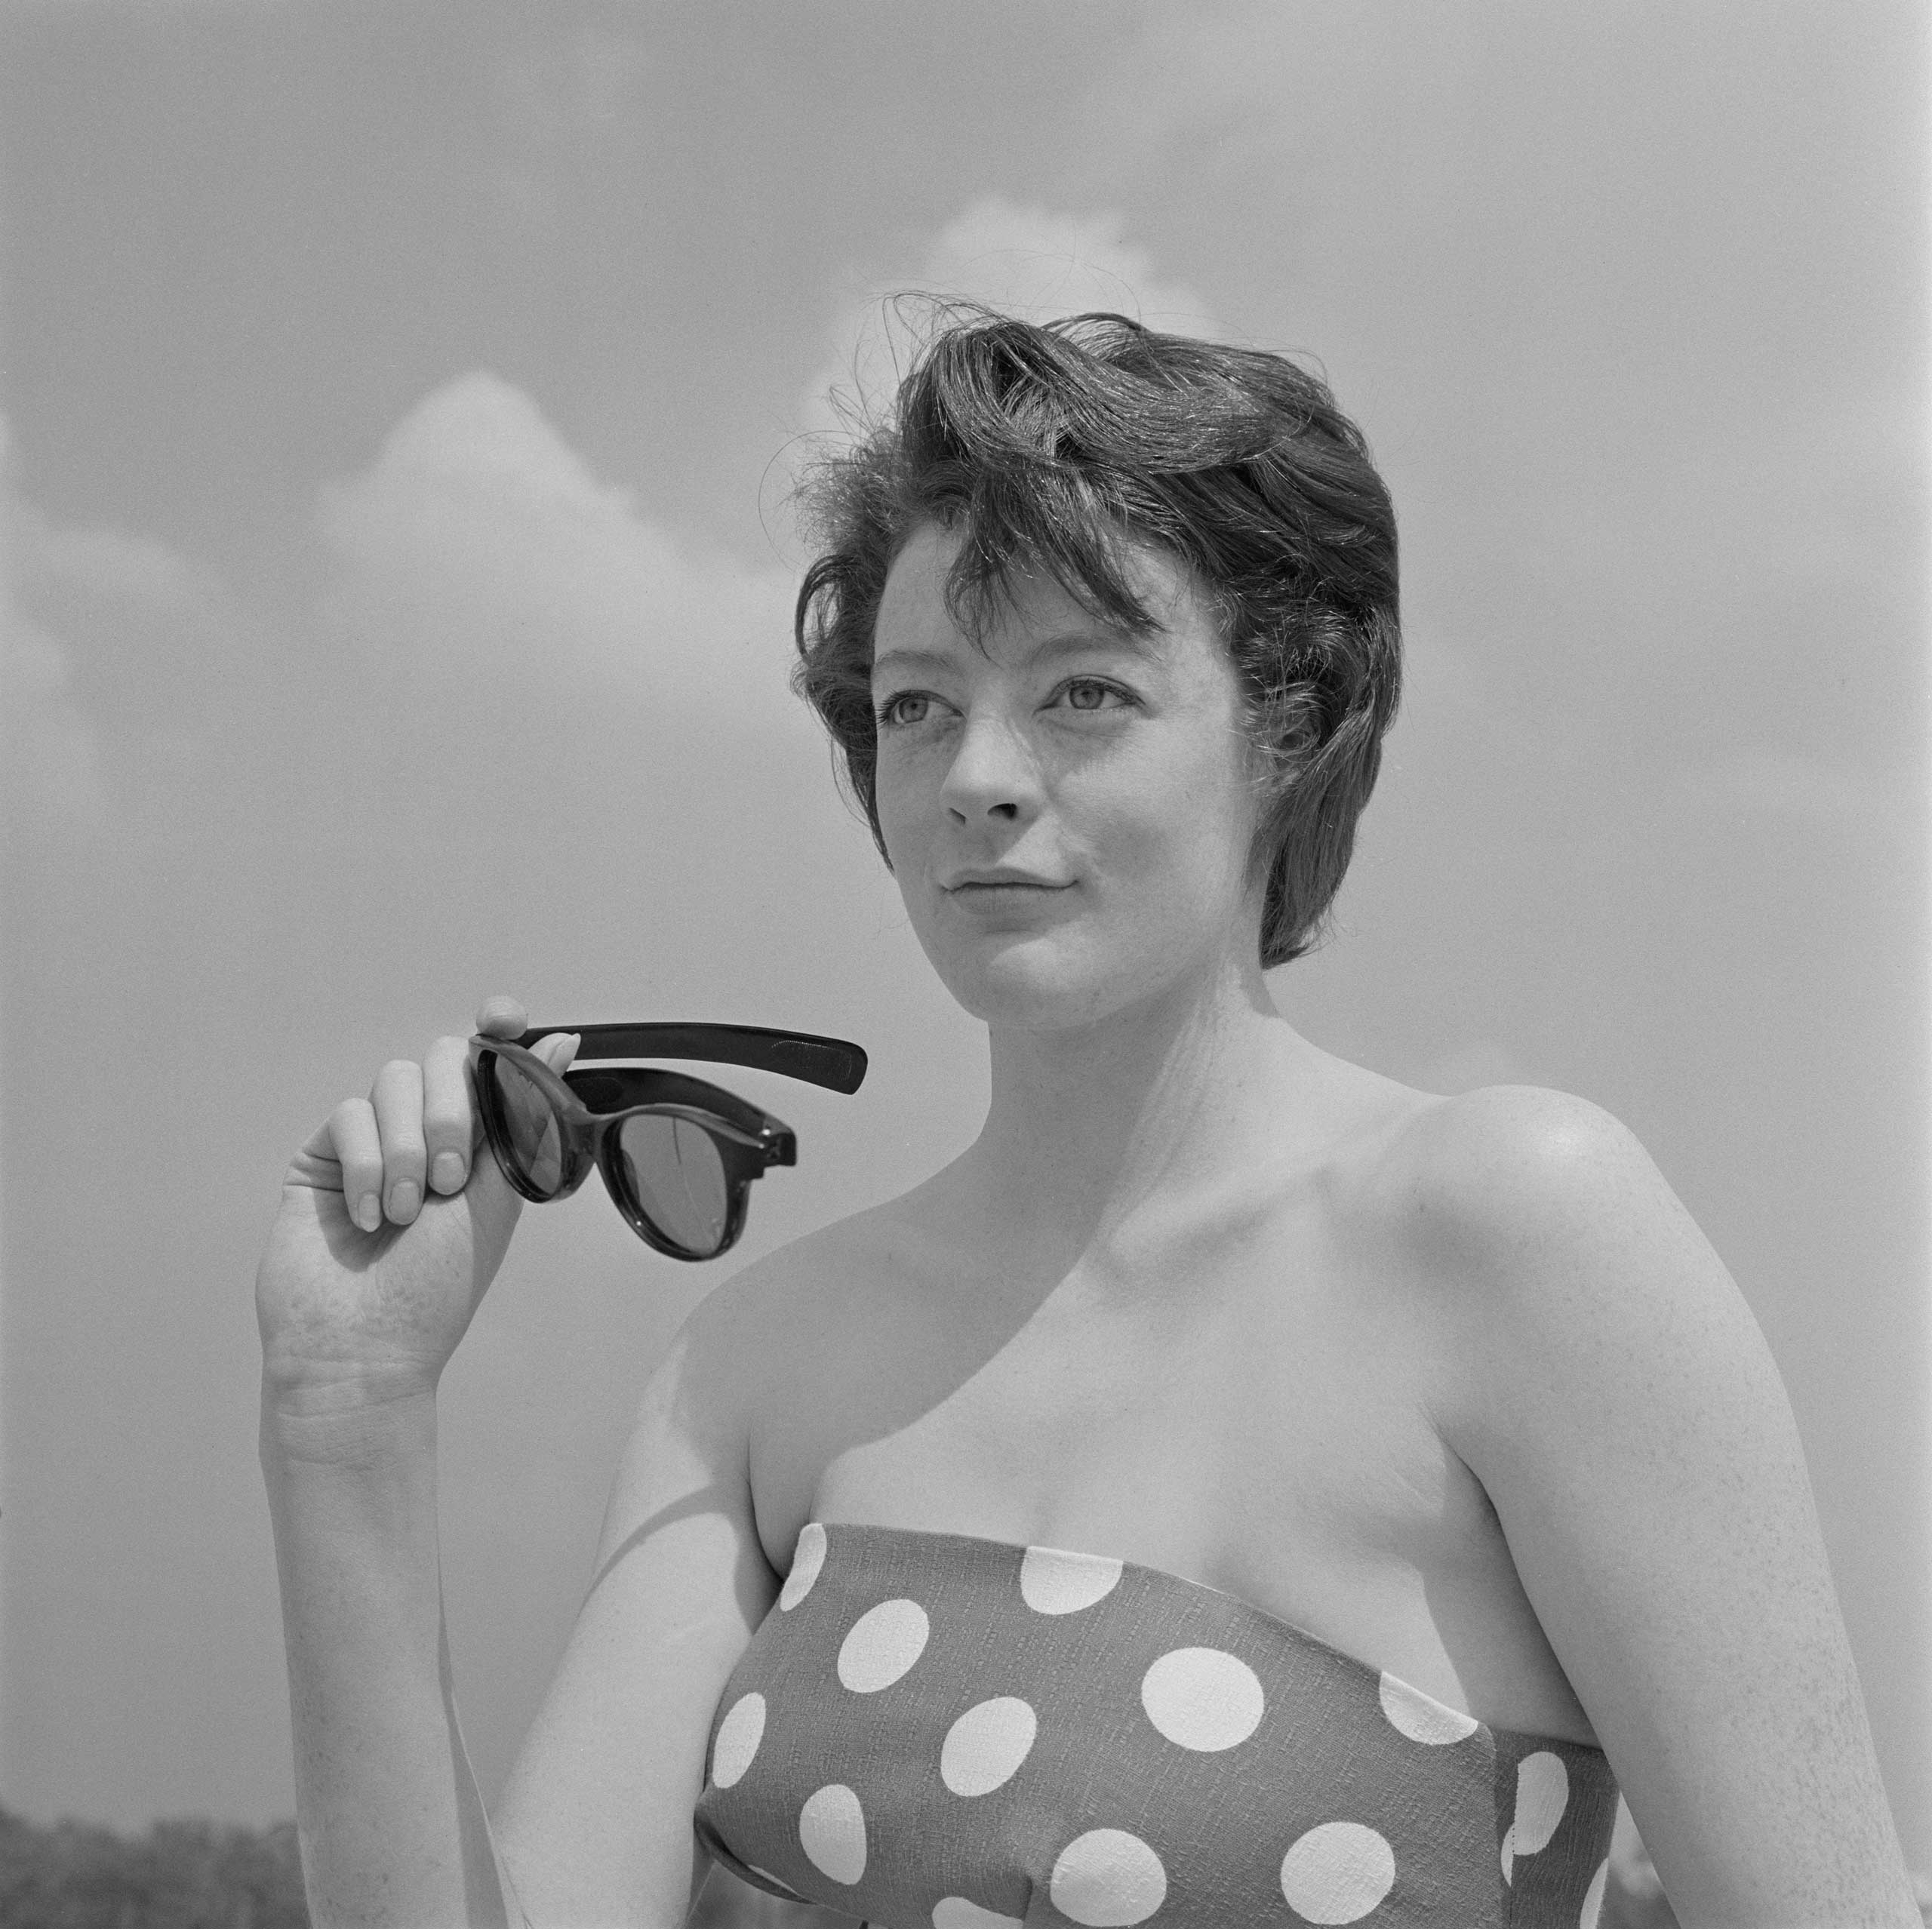 <b>Maggie Smith</b>Photographed for TV Times in 1965.                                   Downton's acerbic Dowager Countess would surely have something to say about her real-life self being photographed on a beach. The following year, Dame Maggie received her first Oscar nomination for playing Desdemona in a film of <i>Othello</i>.